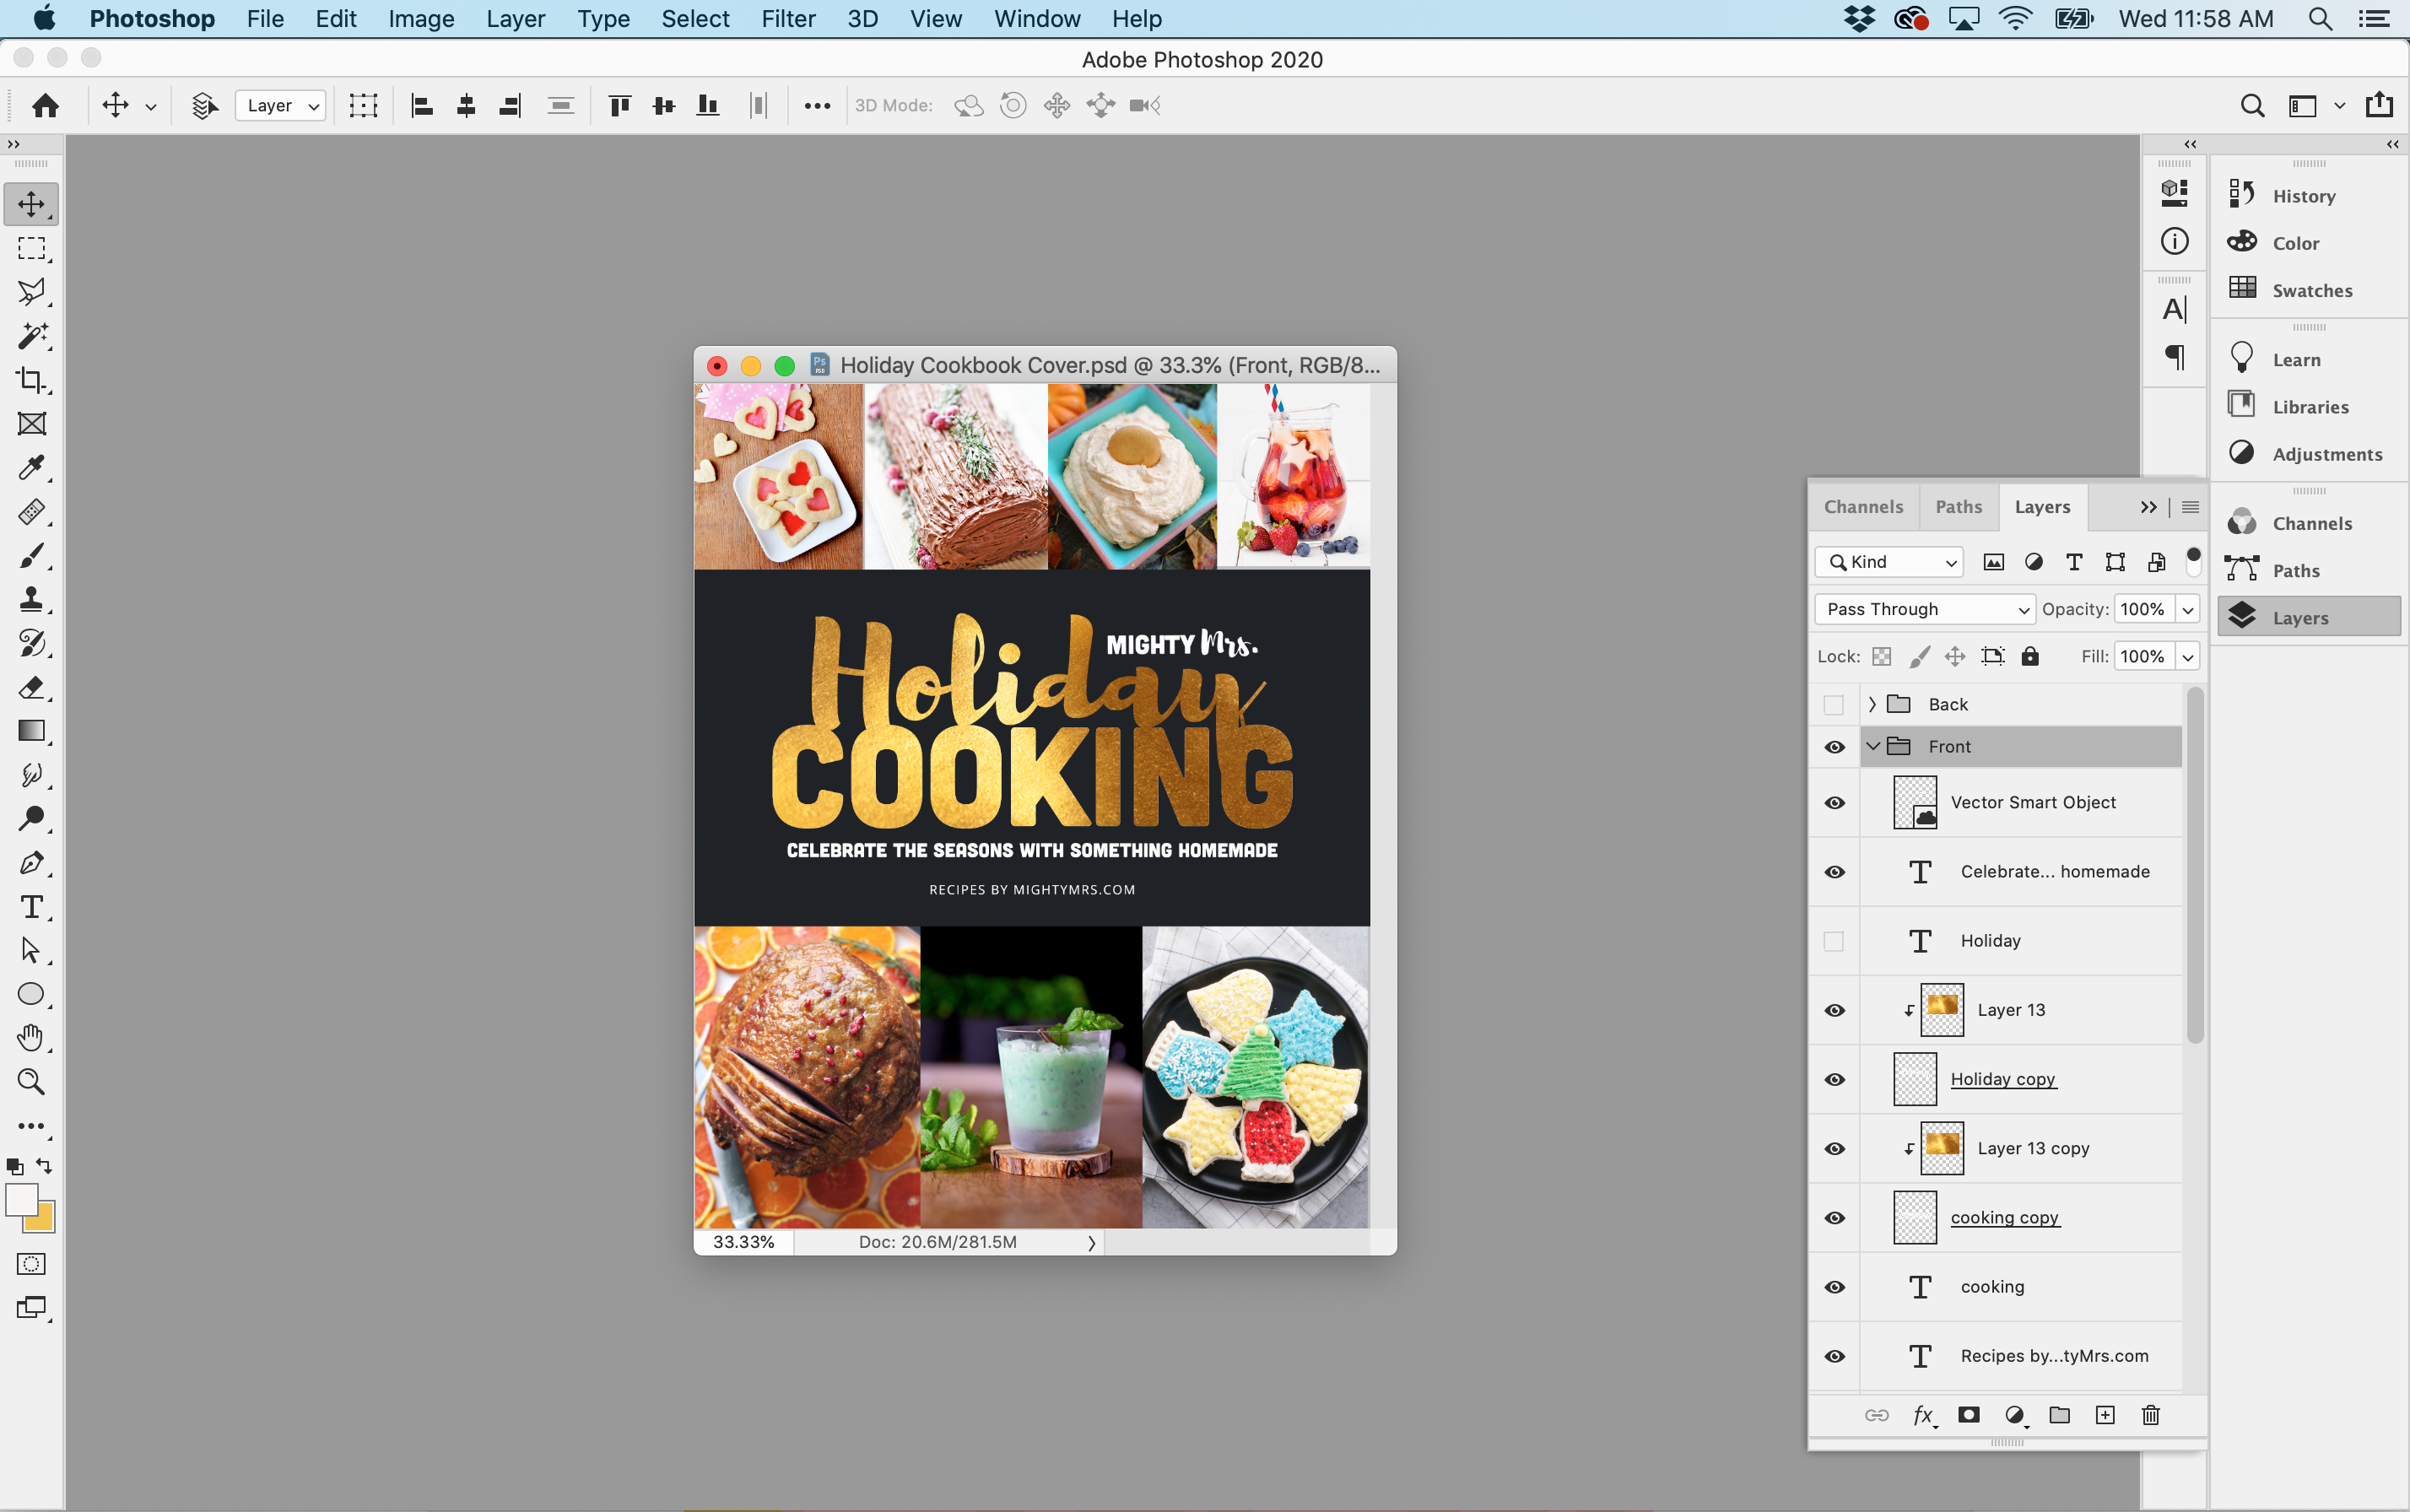 Holiday Cookbook Cover Design Using Photoshop